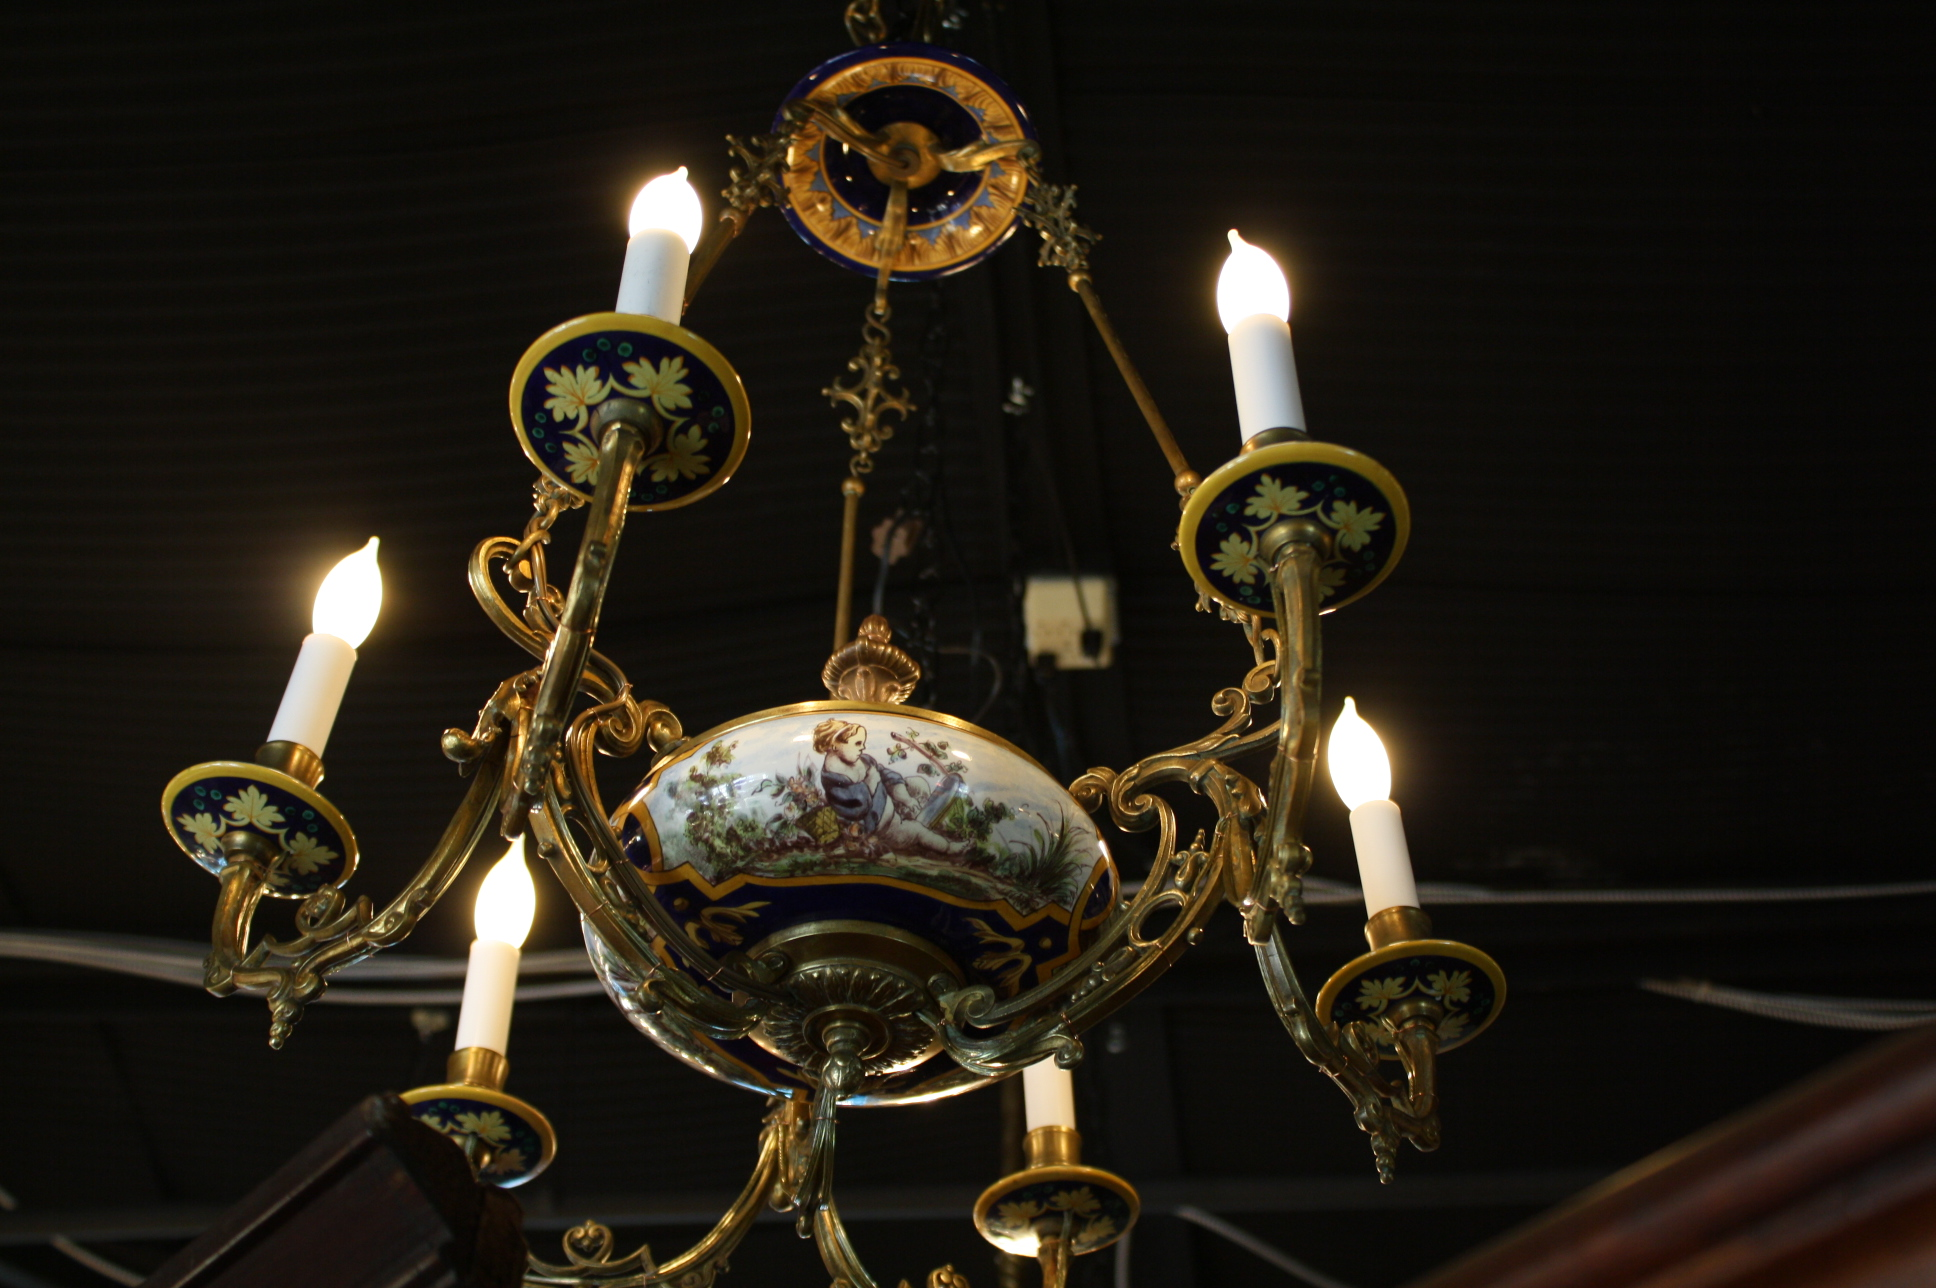 Antique italian chandelier for sale antiques classifieds antique italian chandelier for sale aloadofball Images